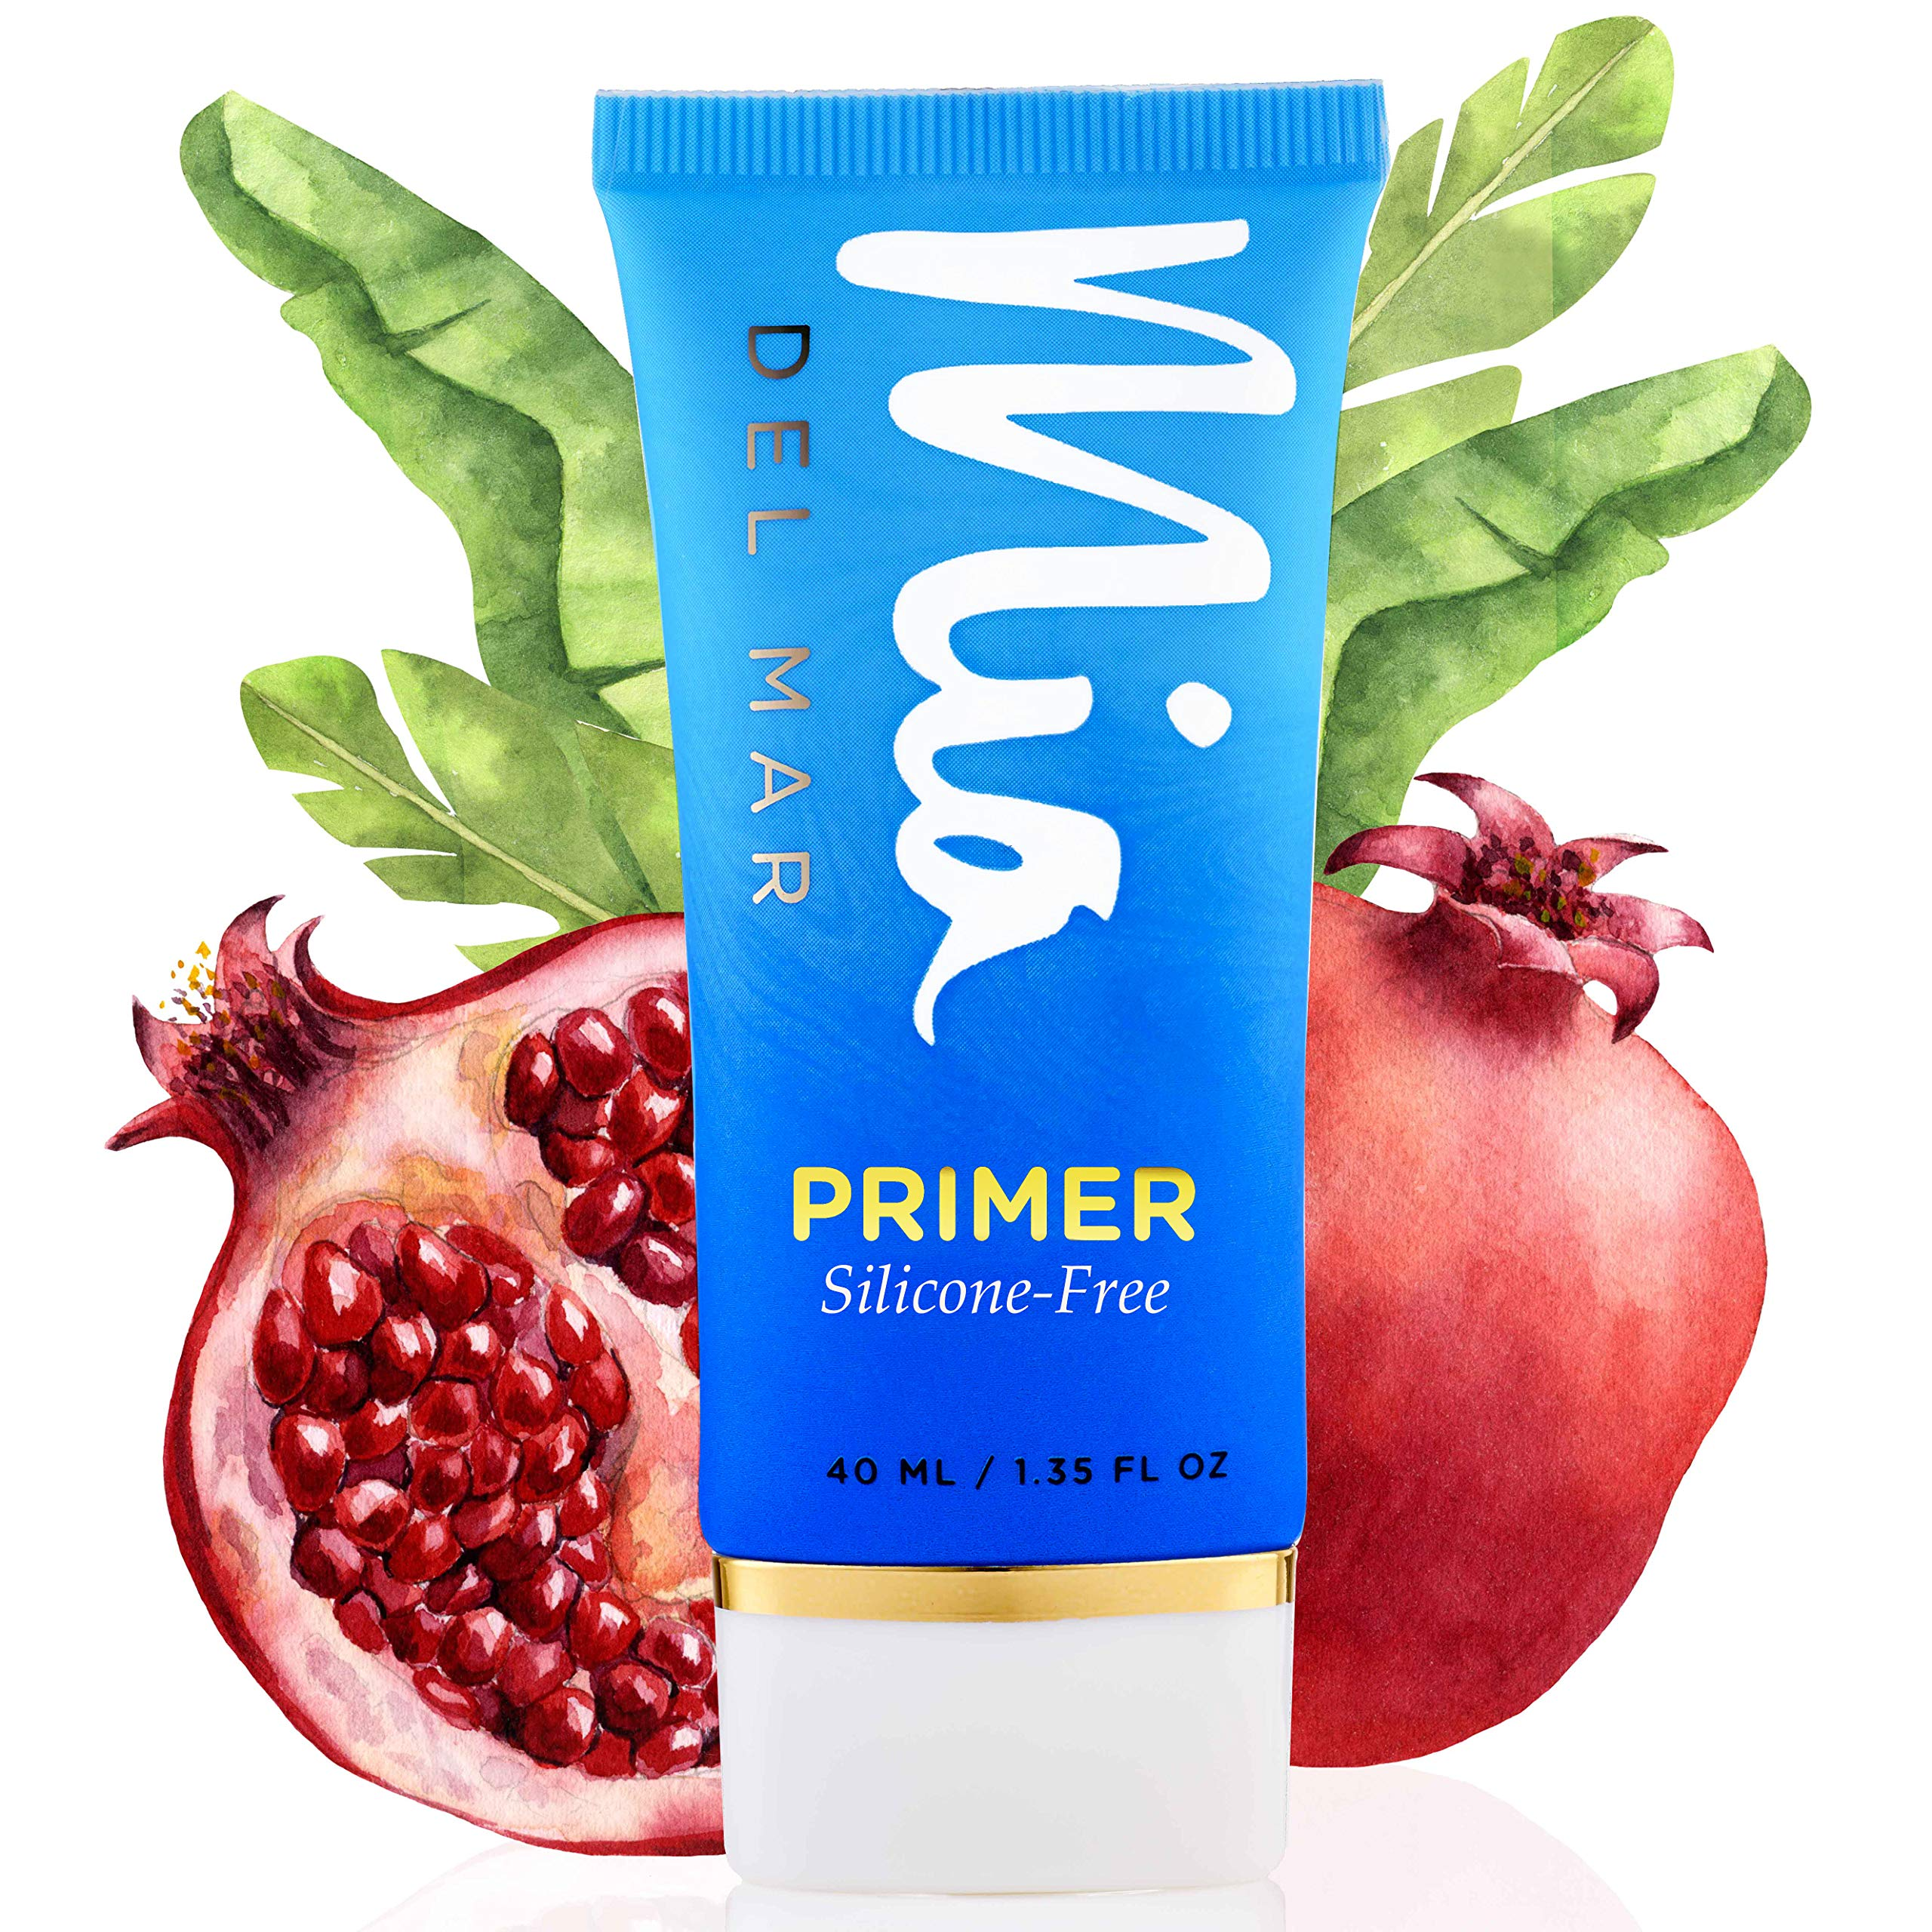 Silicone-Free Makeup Primer With Coconut Oil, Vitamin E, And Tapioca Starch. Improves Skin Texture & Appearance of Pores. Flawless Makeup Application. Vegan And Clean Skin Care.